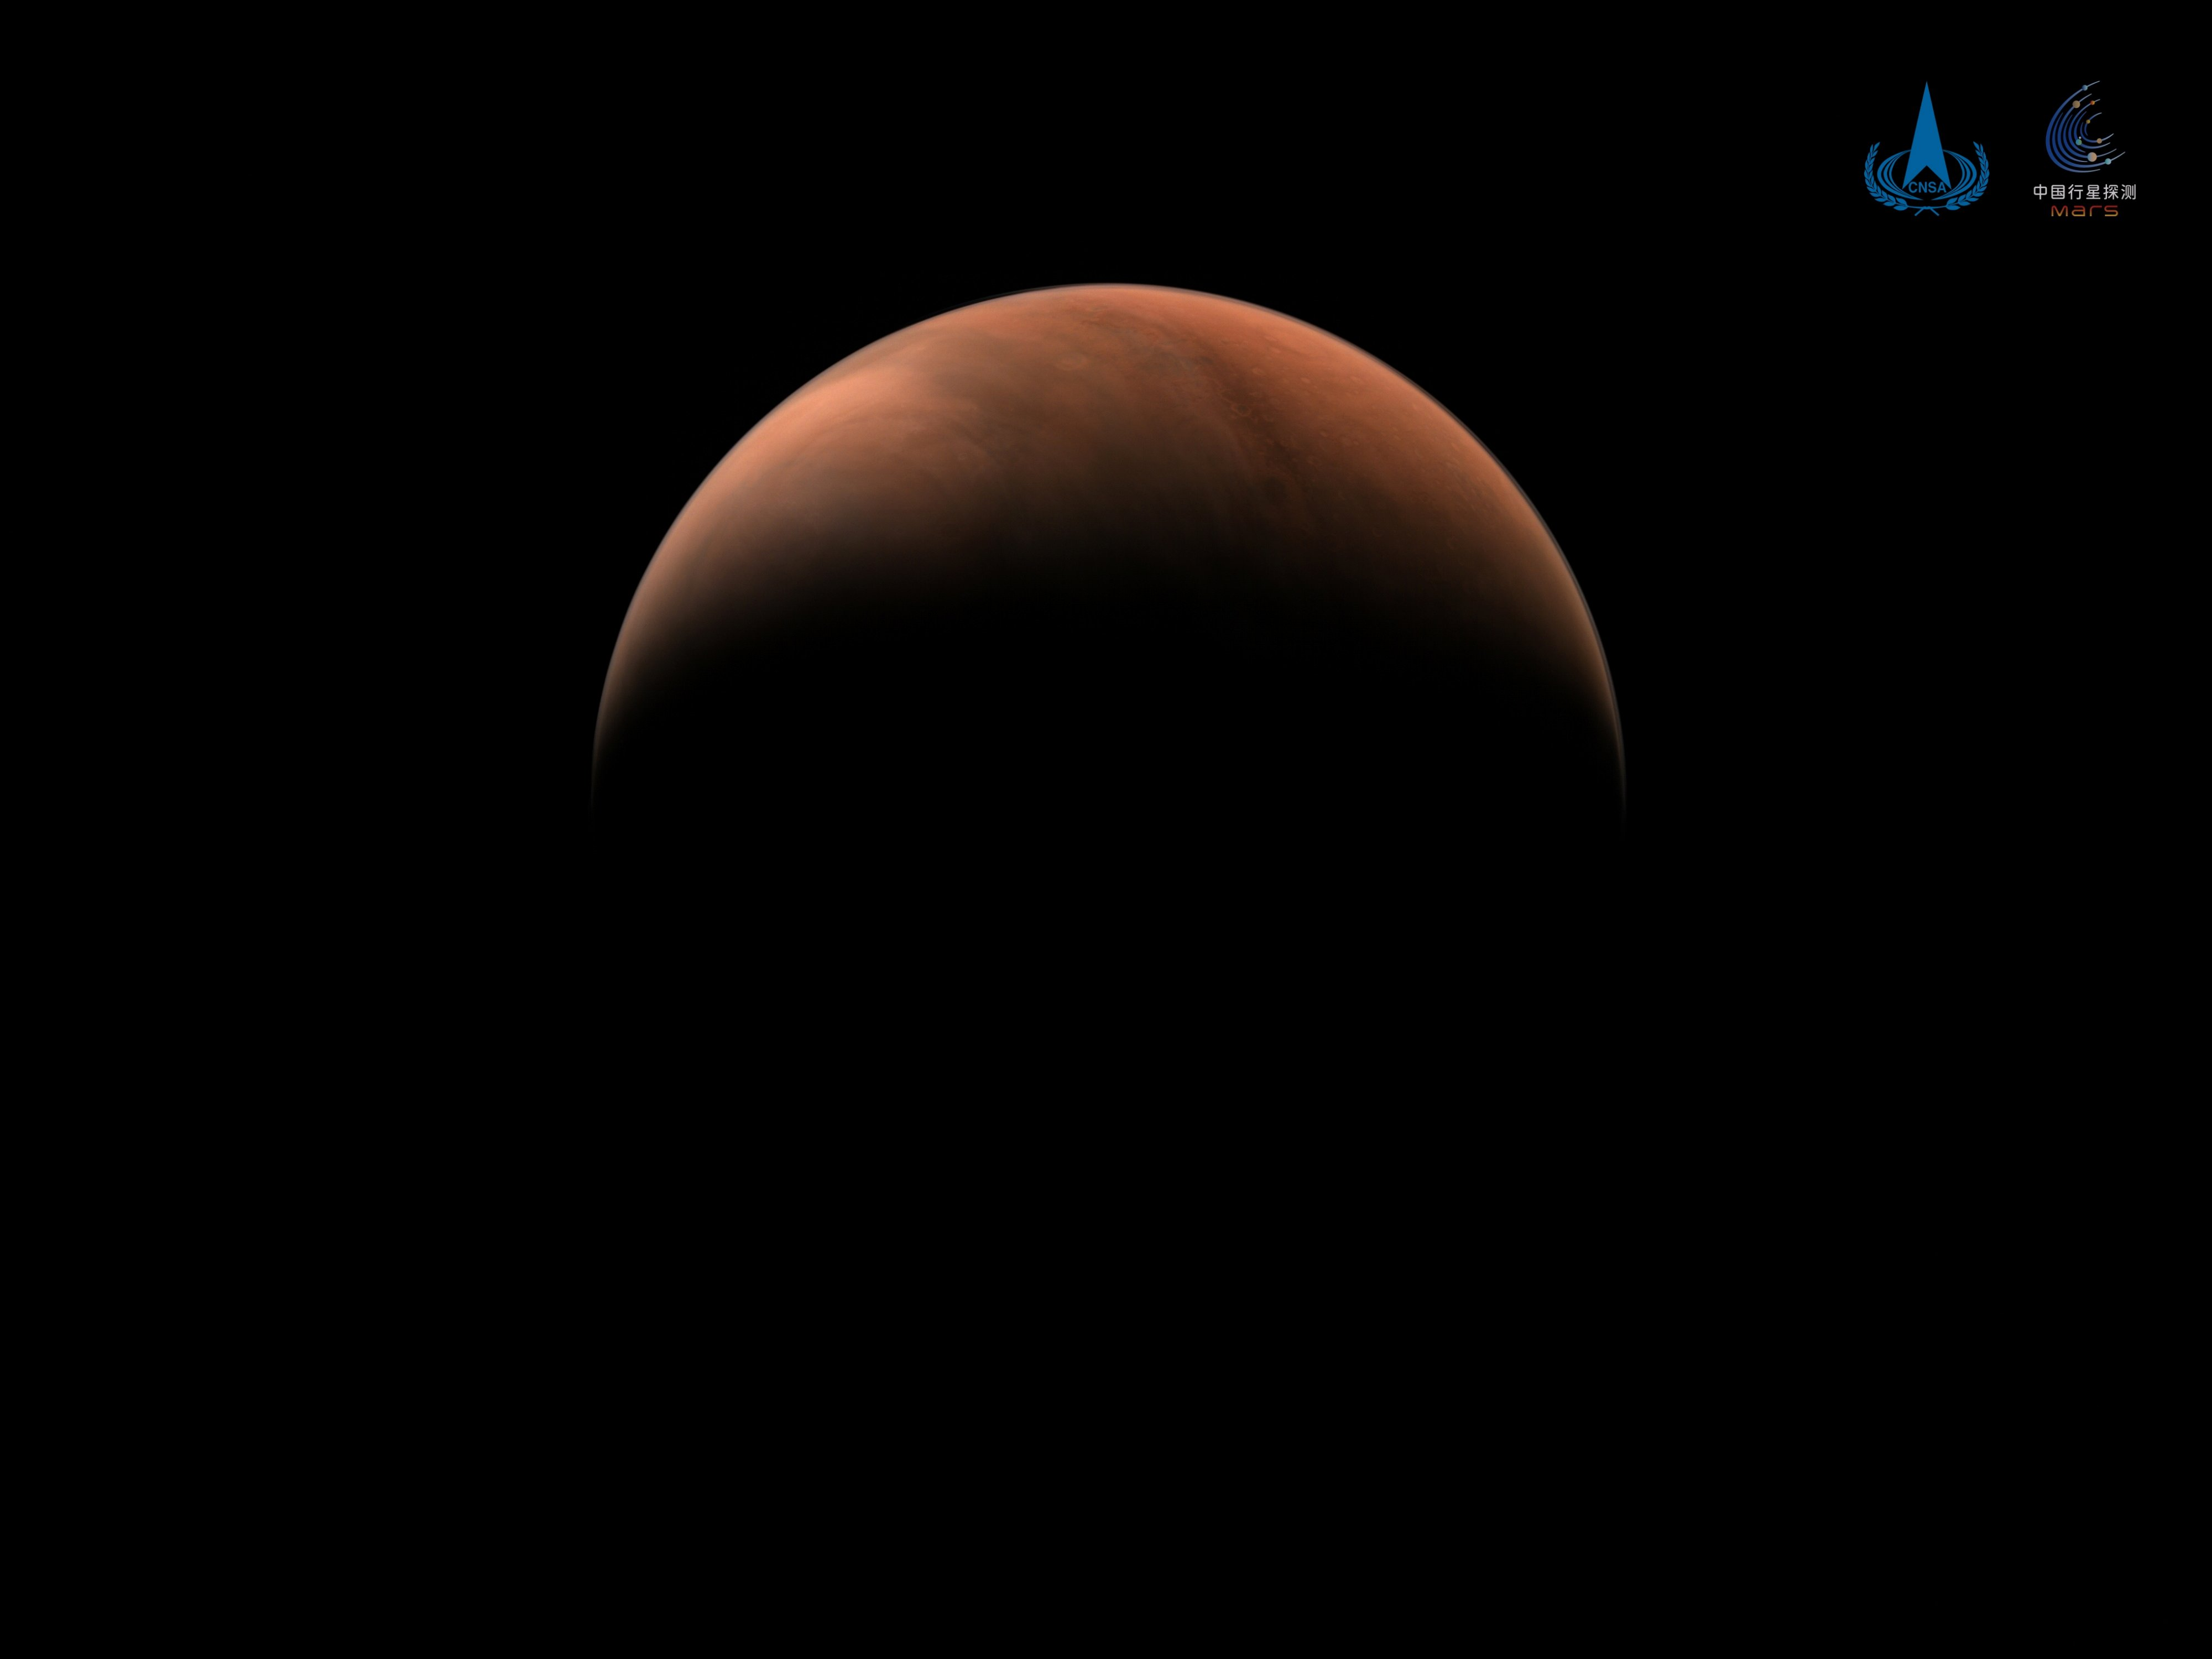 Mars from the shadows